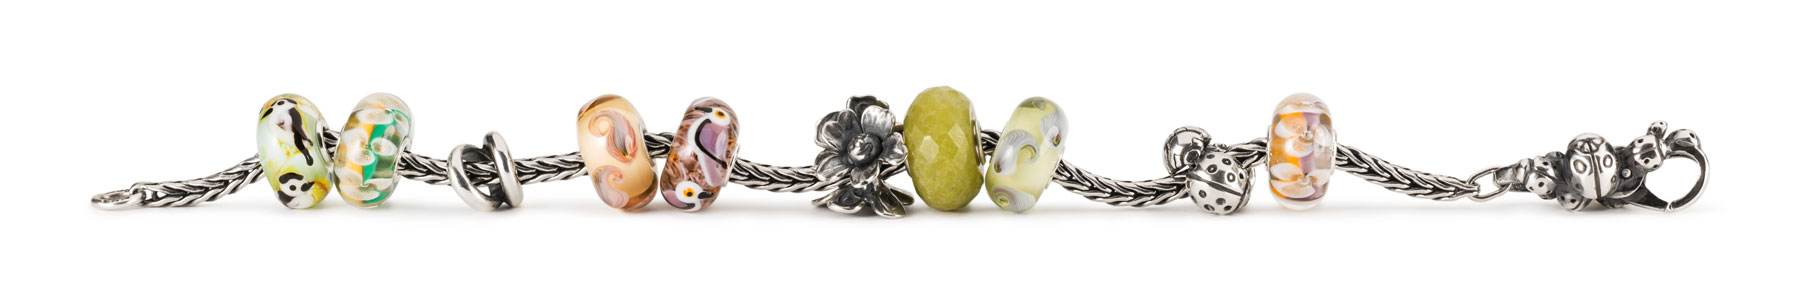 Silver bracelet adorned with the new beads from the Autumn collection